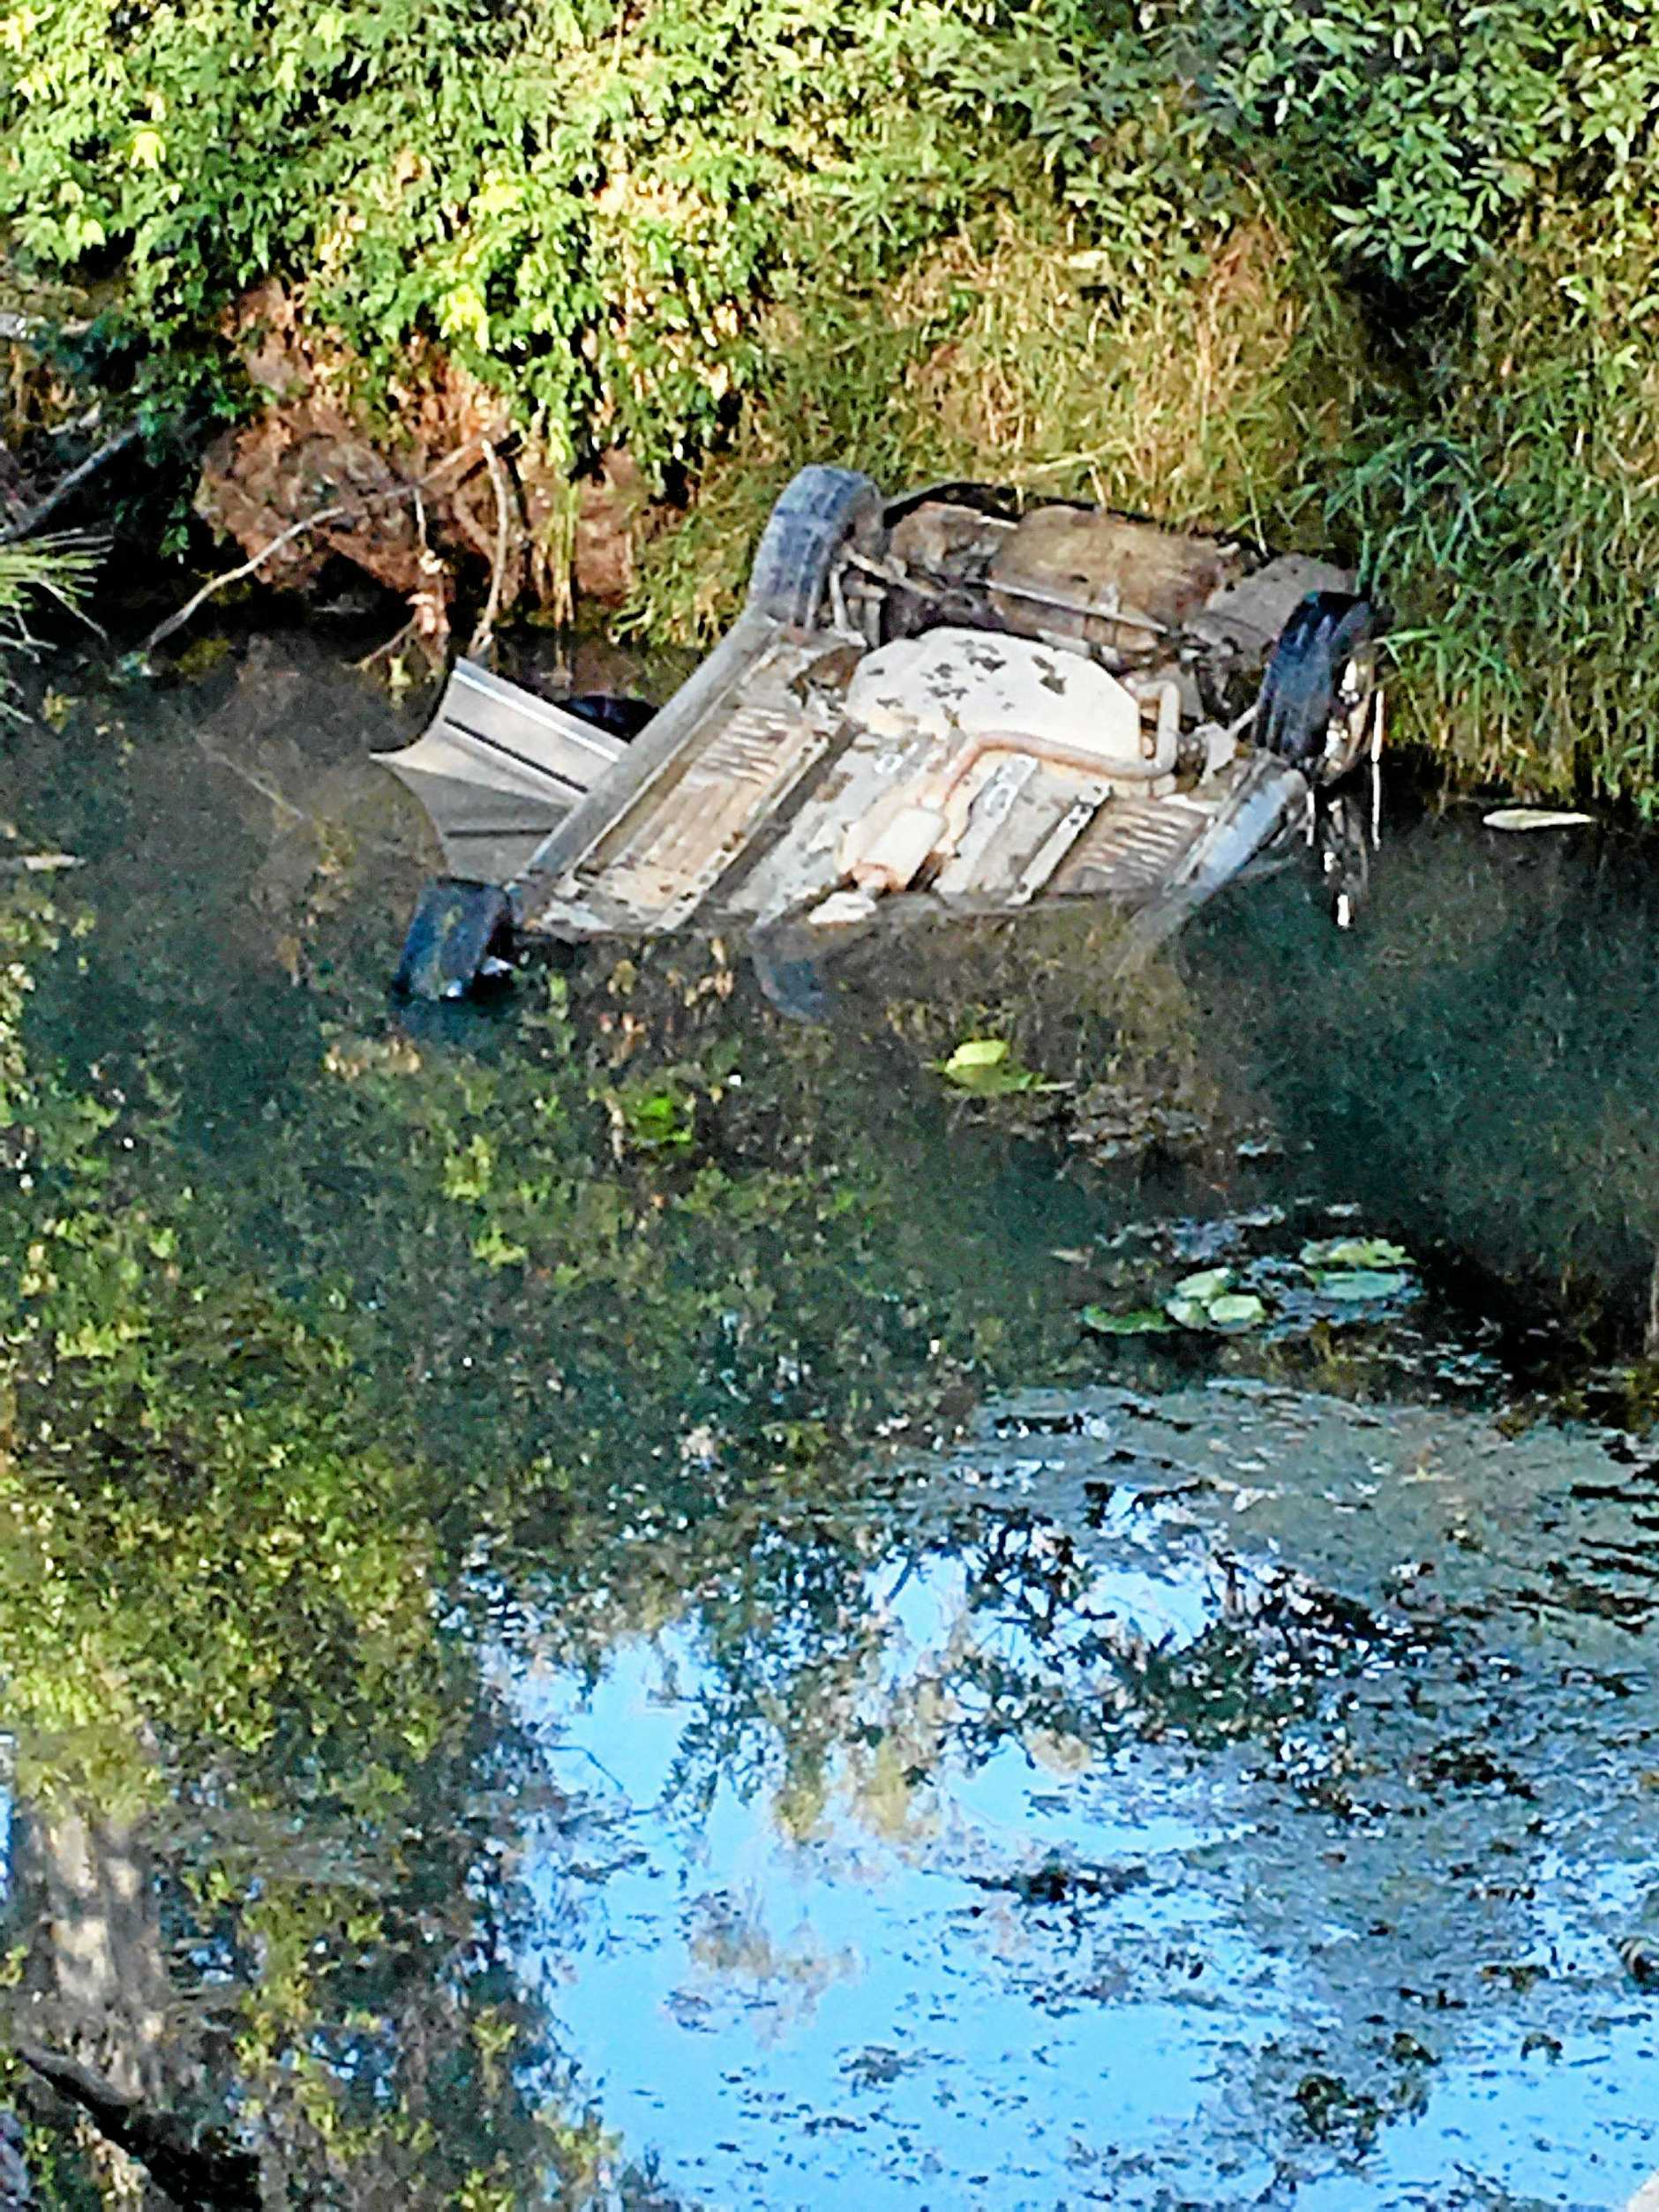 The site of the crash at the Running Creek bridge on Brooweena Woolooga Rd on Saturday April 23, where a young girl had to be resuscitated after her mother pulled her from the submerged car.